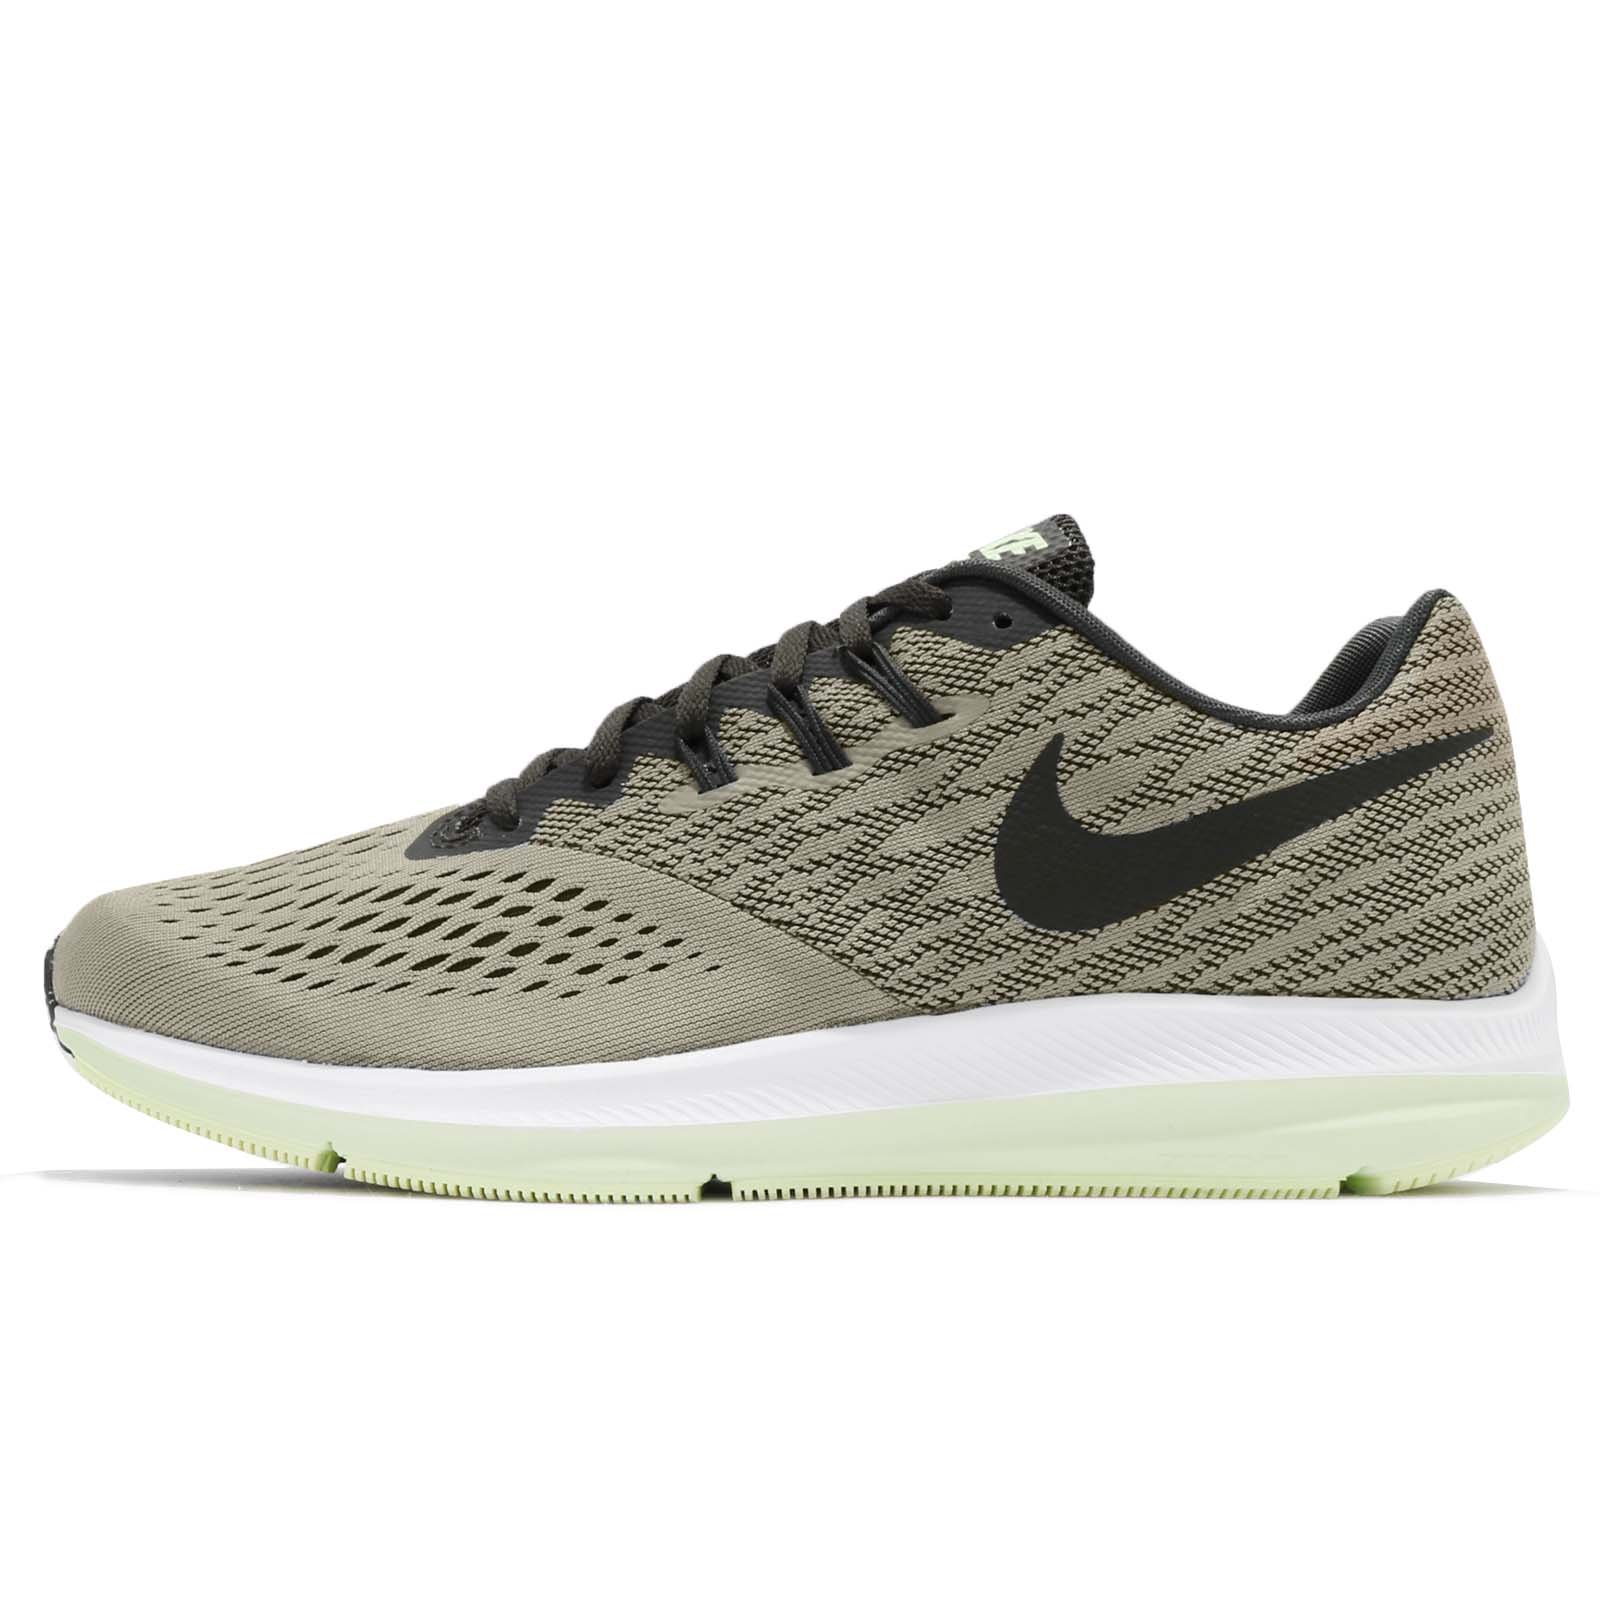 3def285ad4f Galleon - NIKE Men s Air Zoom Winflo 4 Running Shoe (13